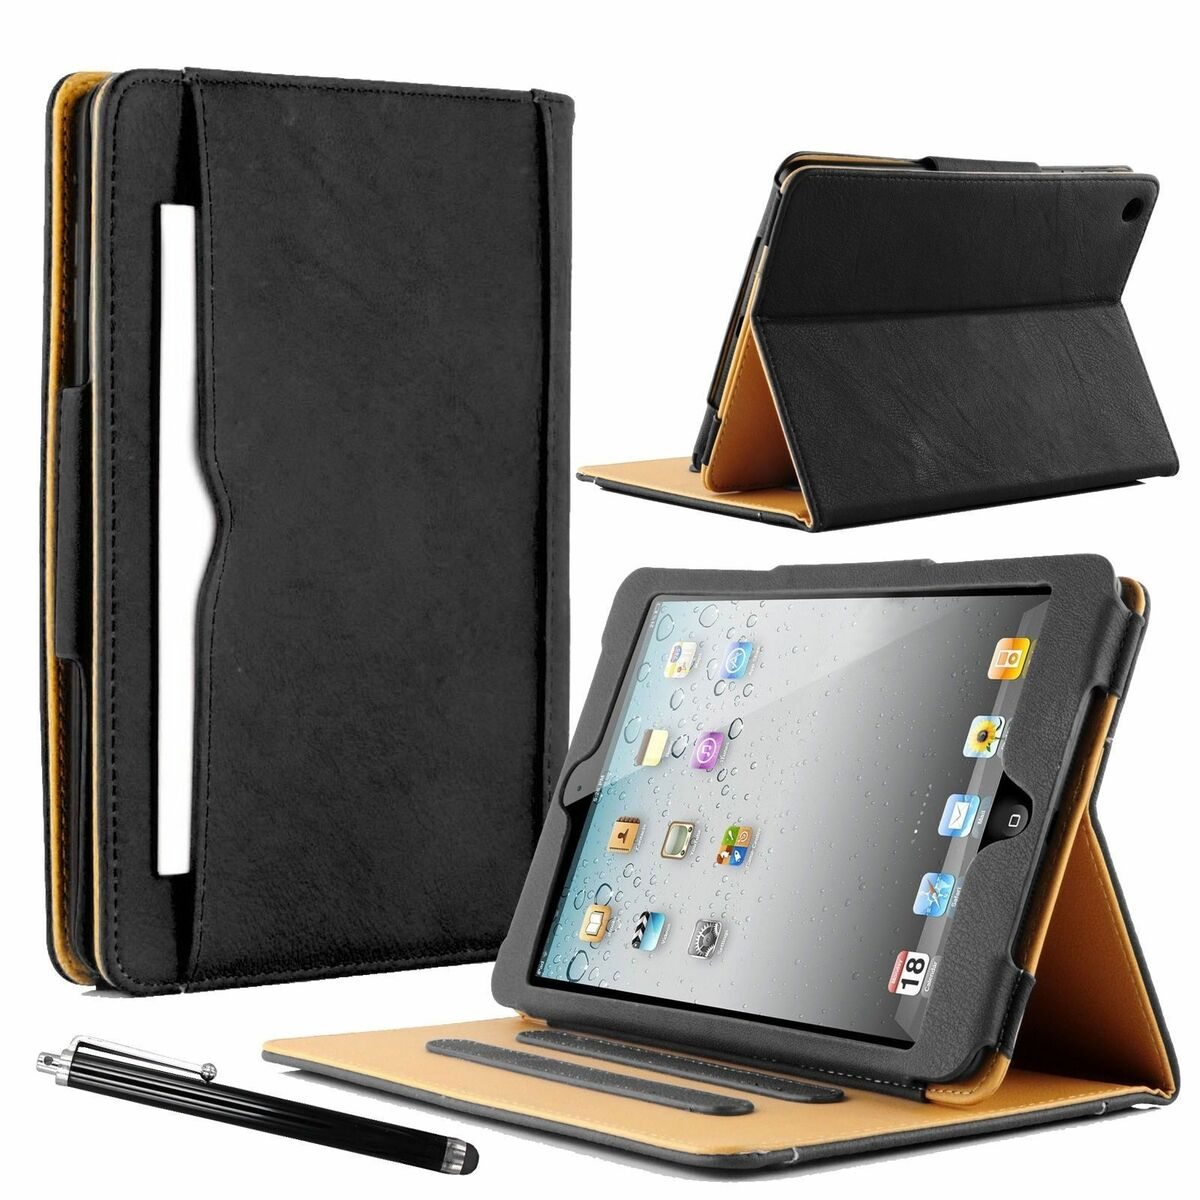 Luxury real leather wallet smart stand case cover for ipad 234 air 2017 18 mini 